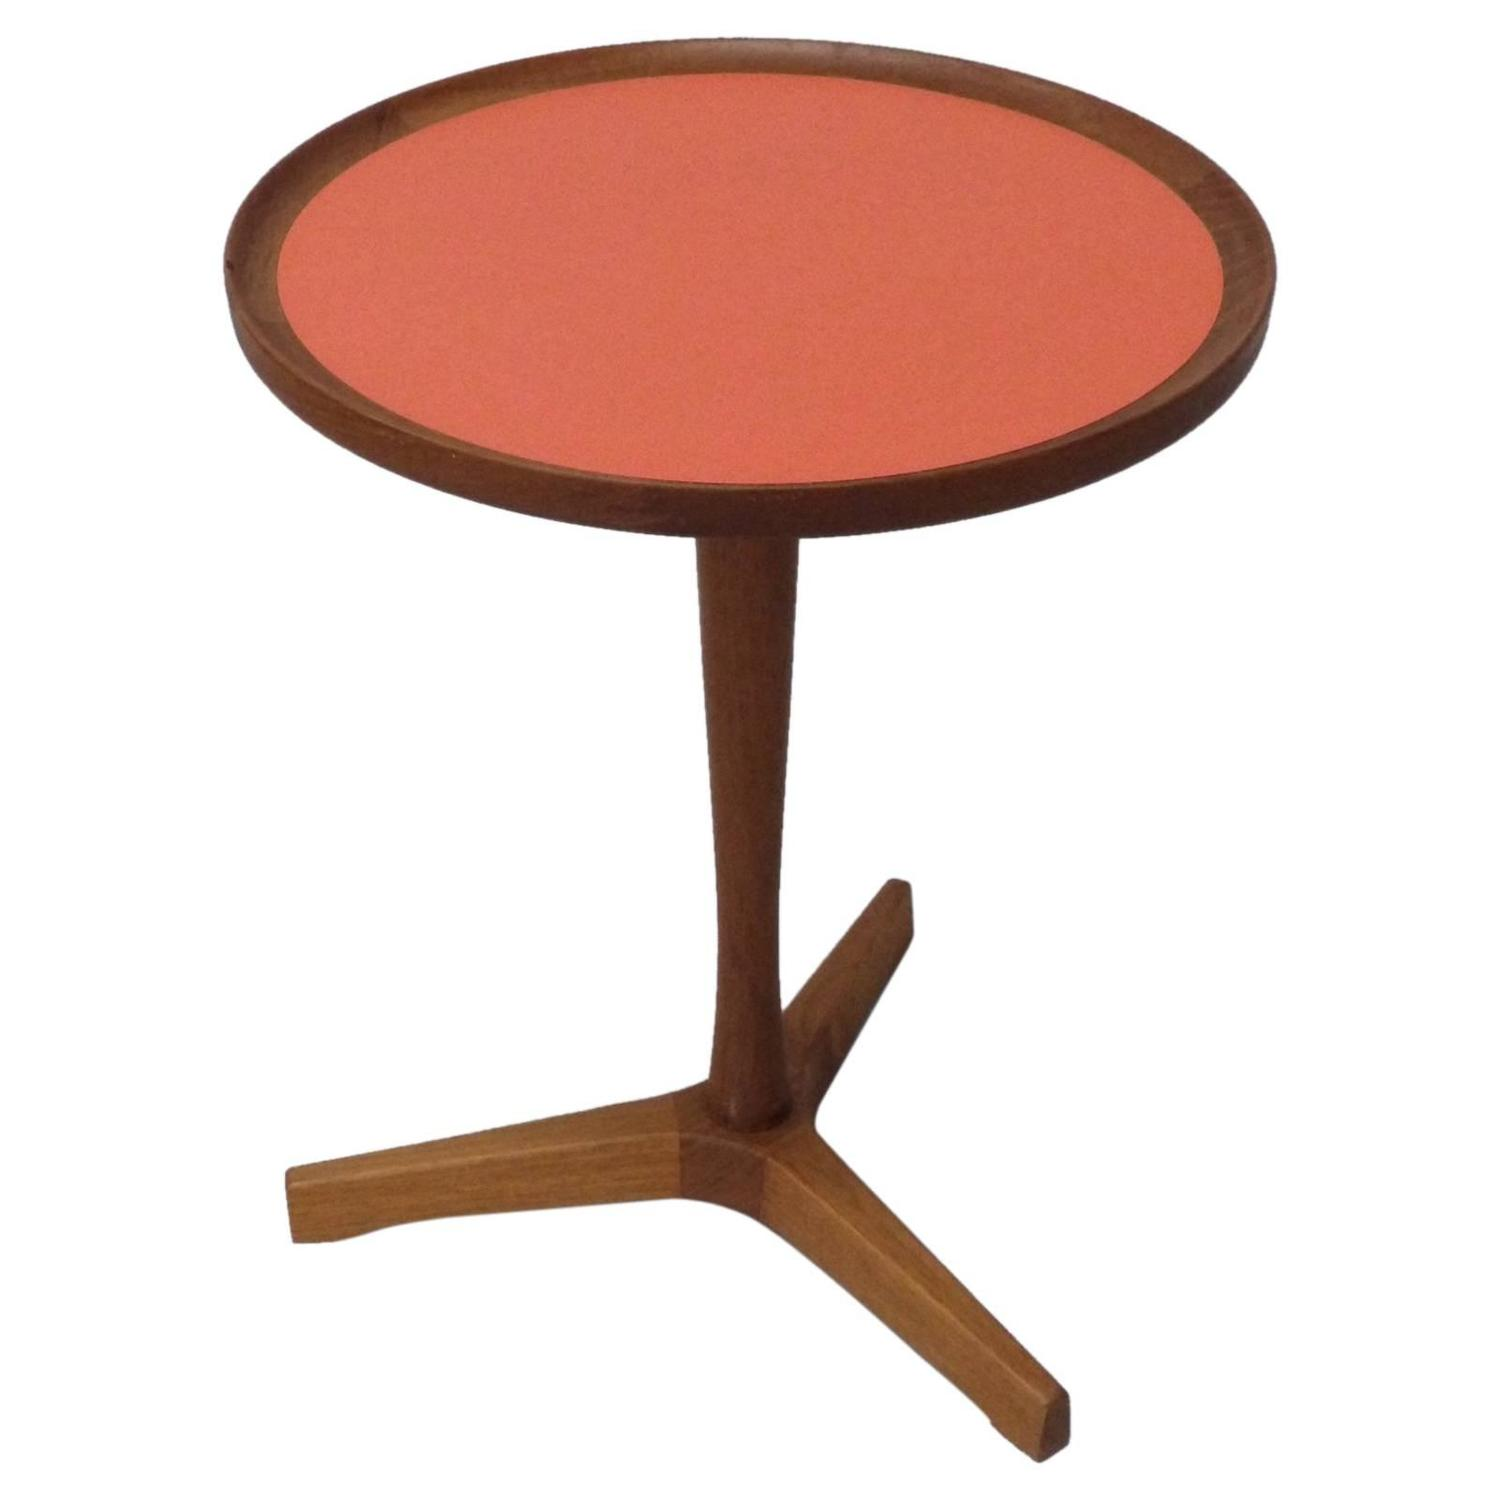 Hans Anderson Orange Inlay Teak Occasional Table For Sale at 1stdibs